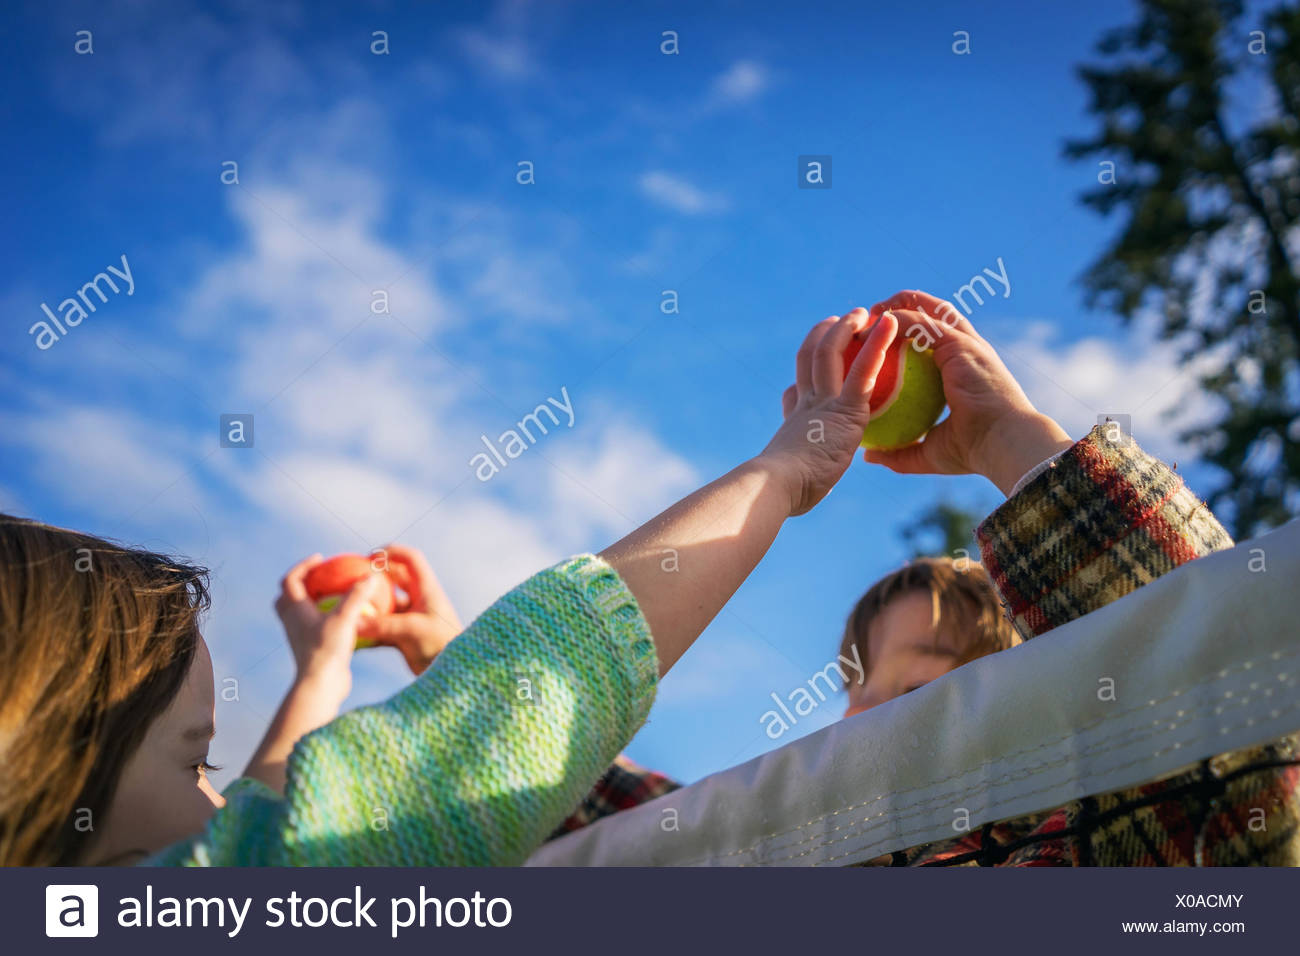 Two children passing tennis balls over the top of the net - Stock Image